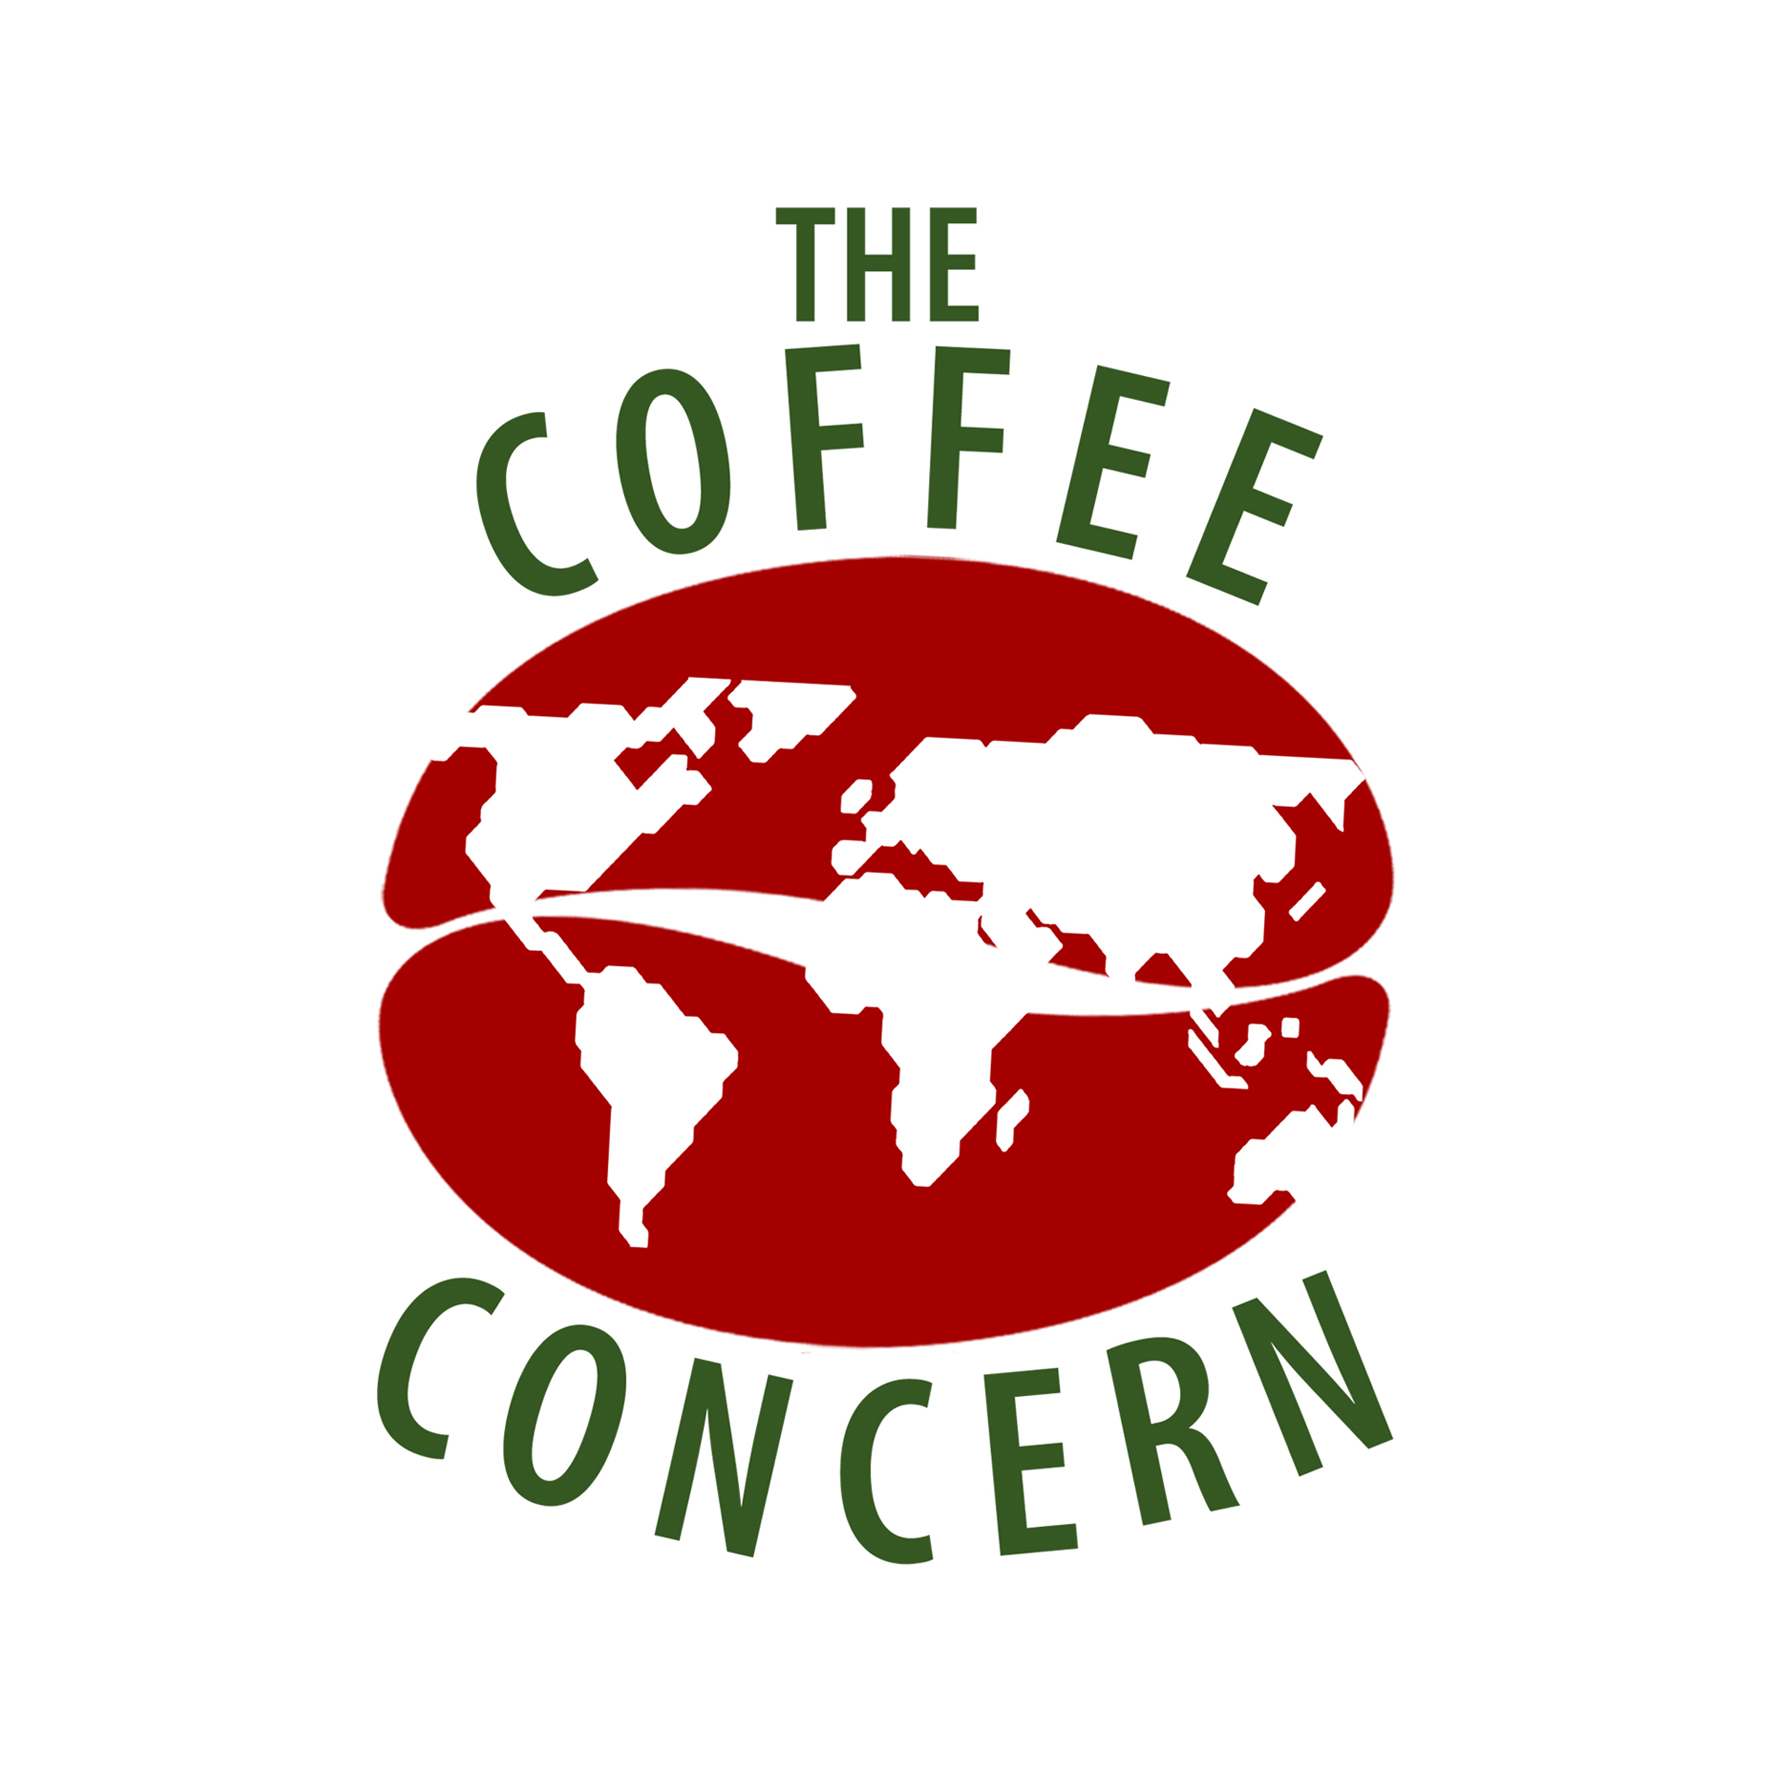 The Coffee Concern